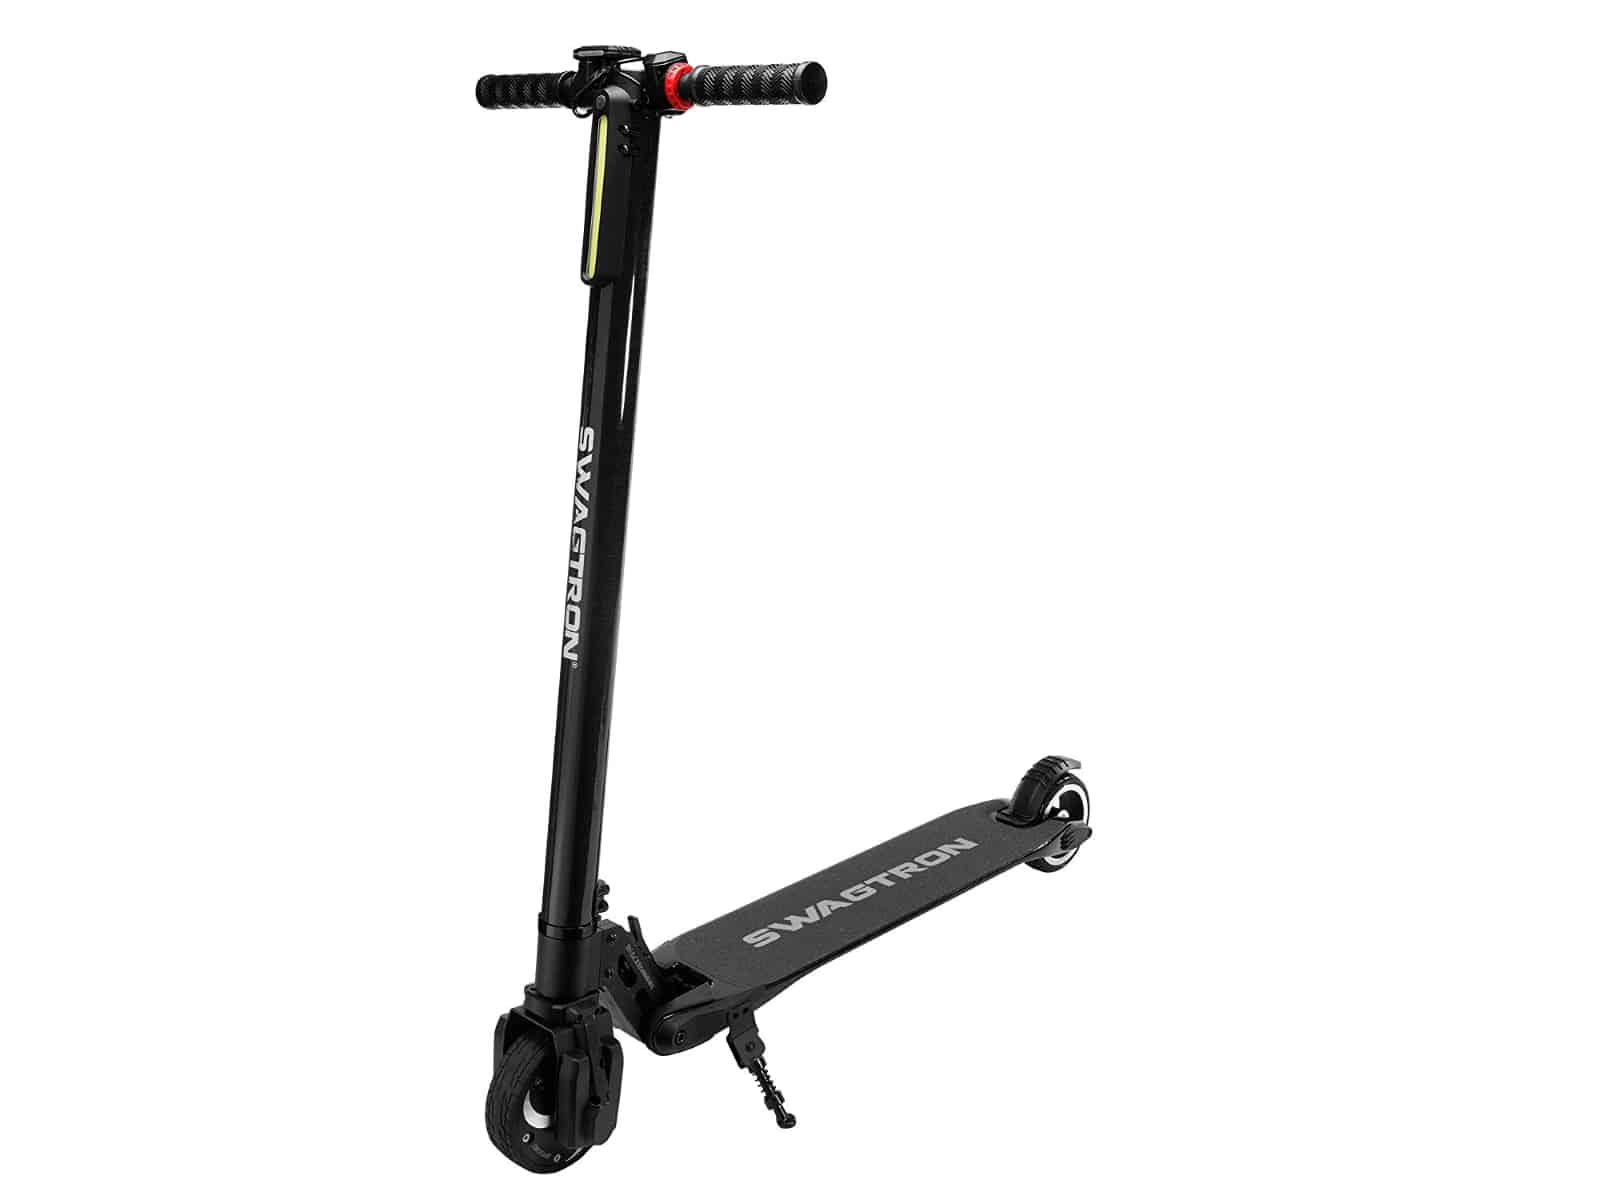 Swagtron Swagger 1 Adult Electric Scooter